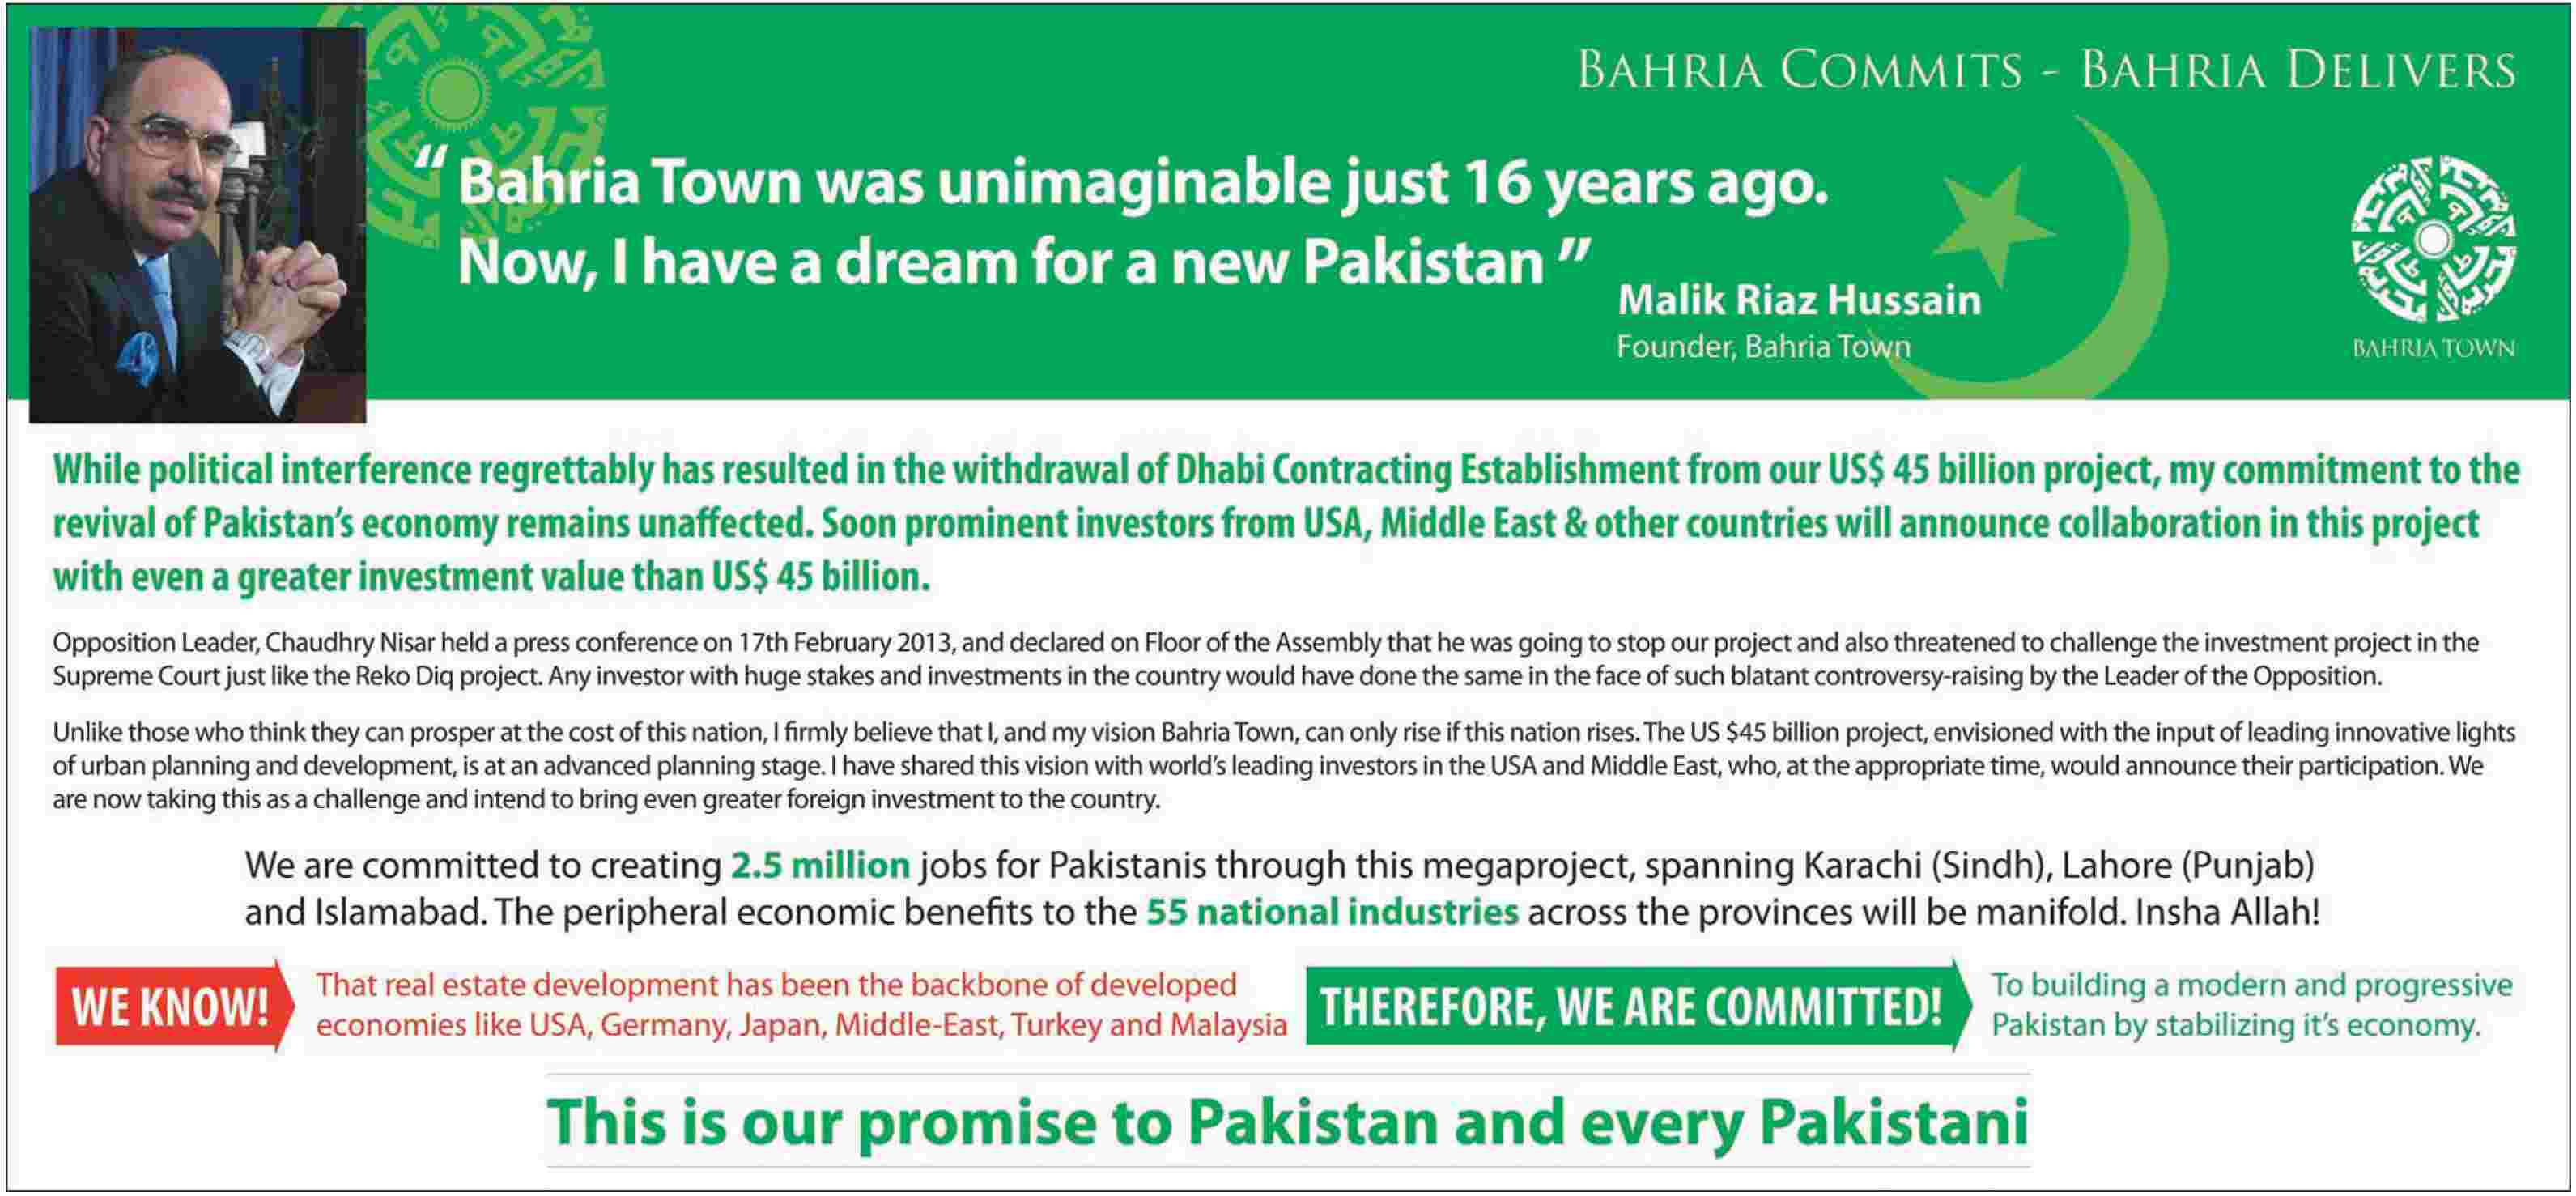 Bahria Town Karachi Project http://www.chowrangi.pk/bahria-town-statement-on-cancellation-of-world-tallest-tower-project-in-karachi.html